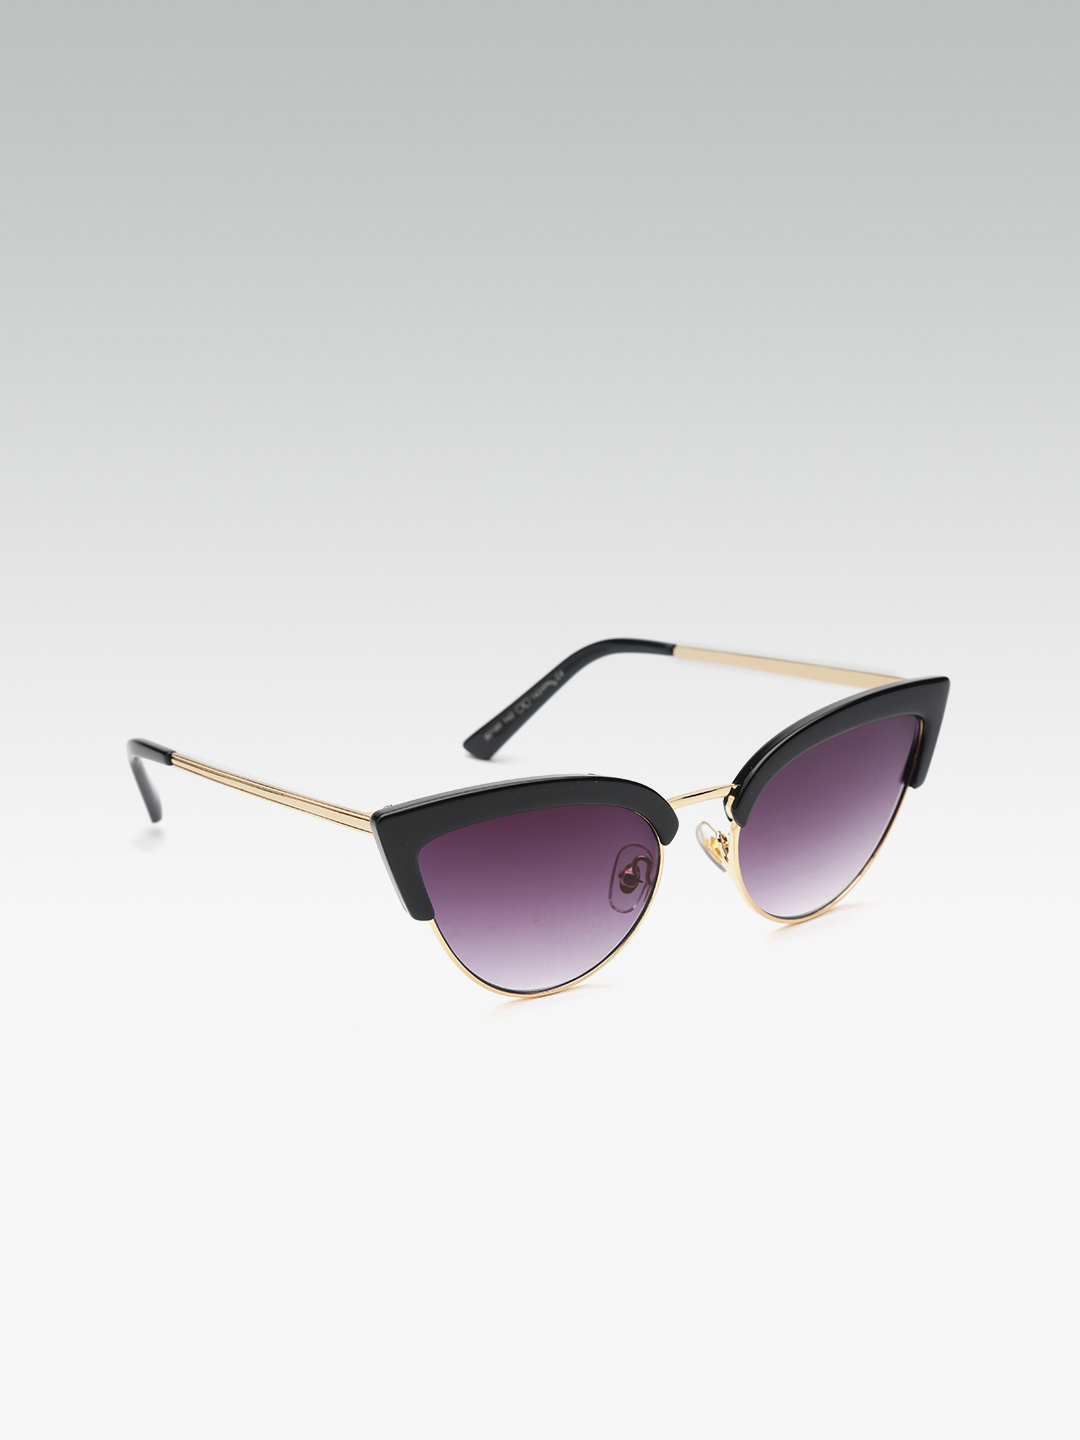 Sunglasses-The Catty Charms Sunglasses2